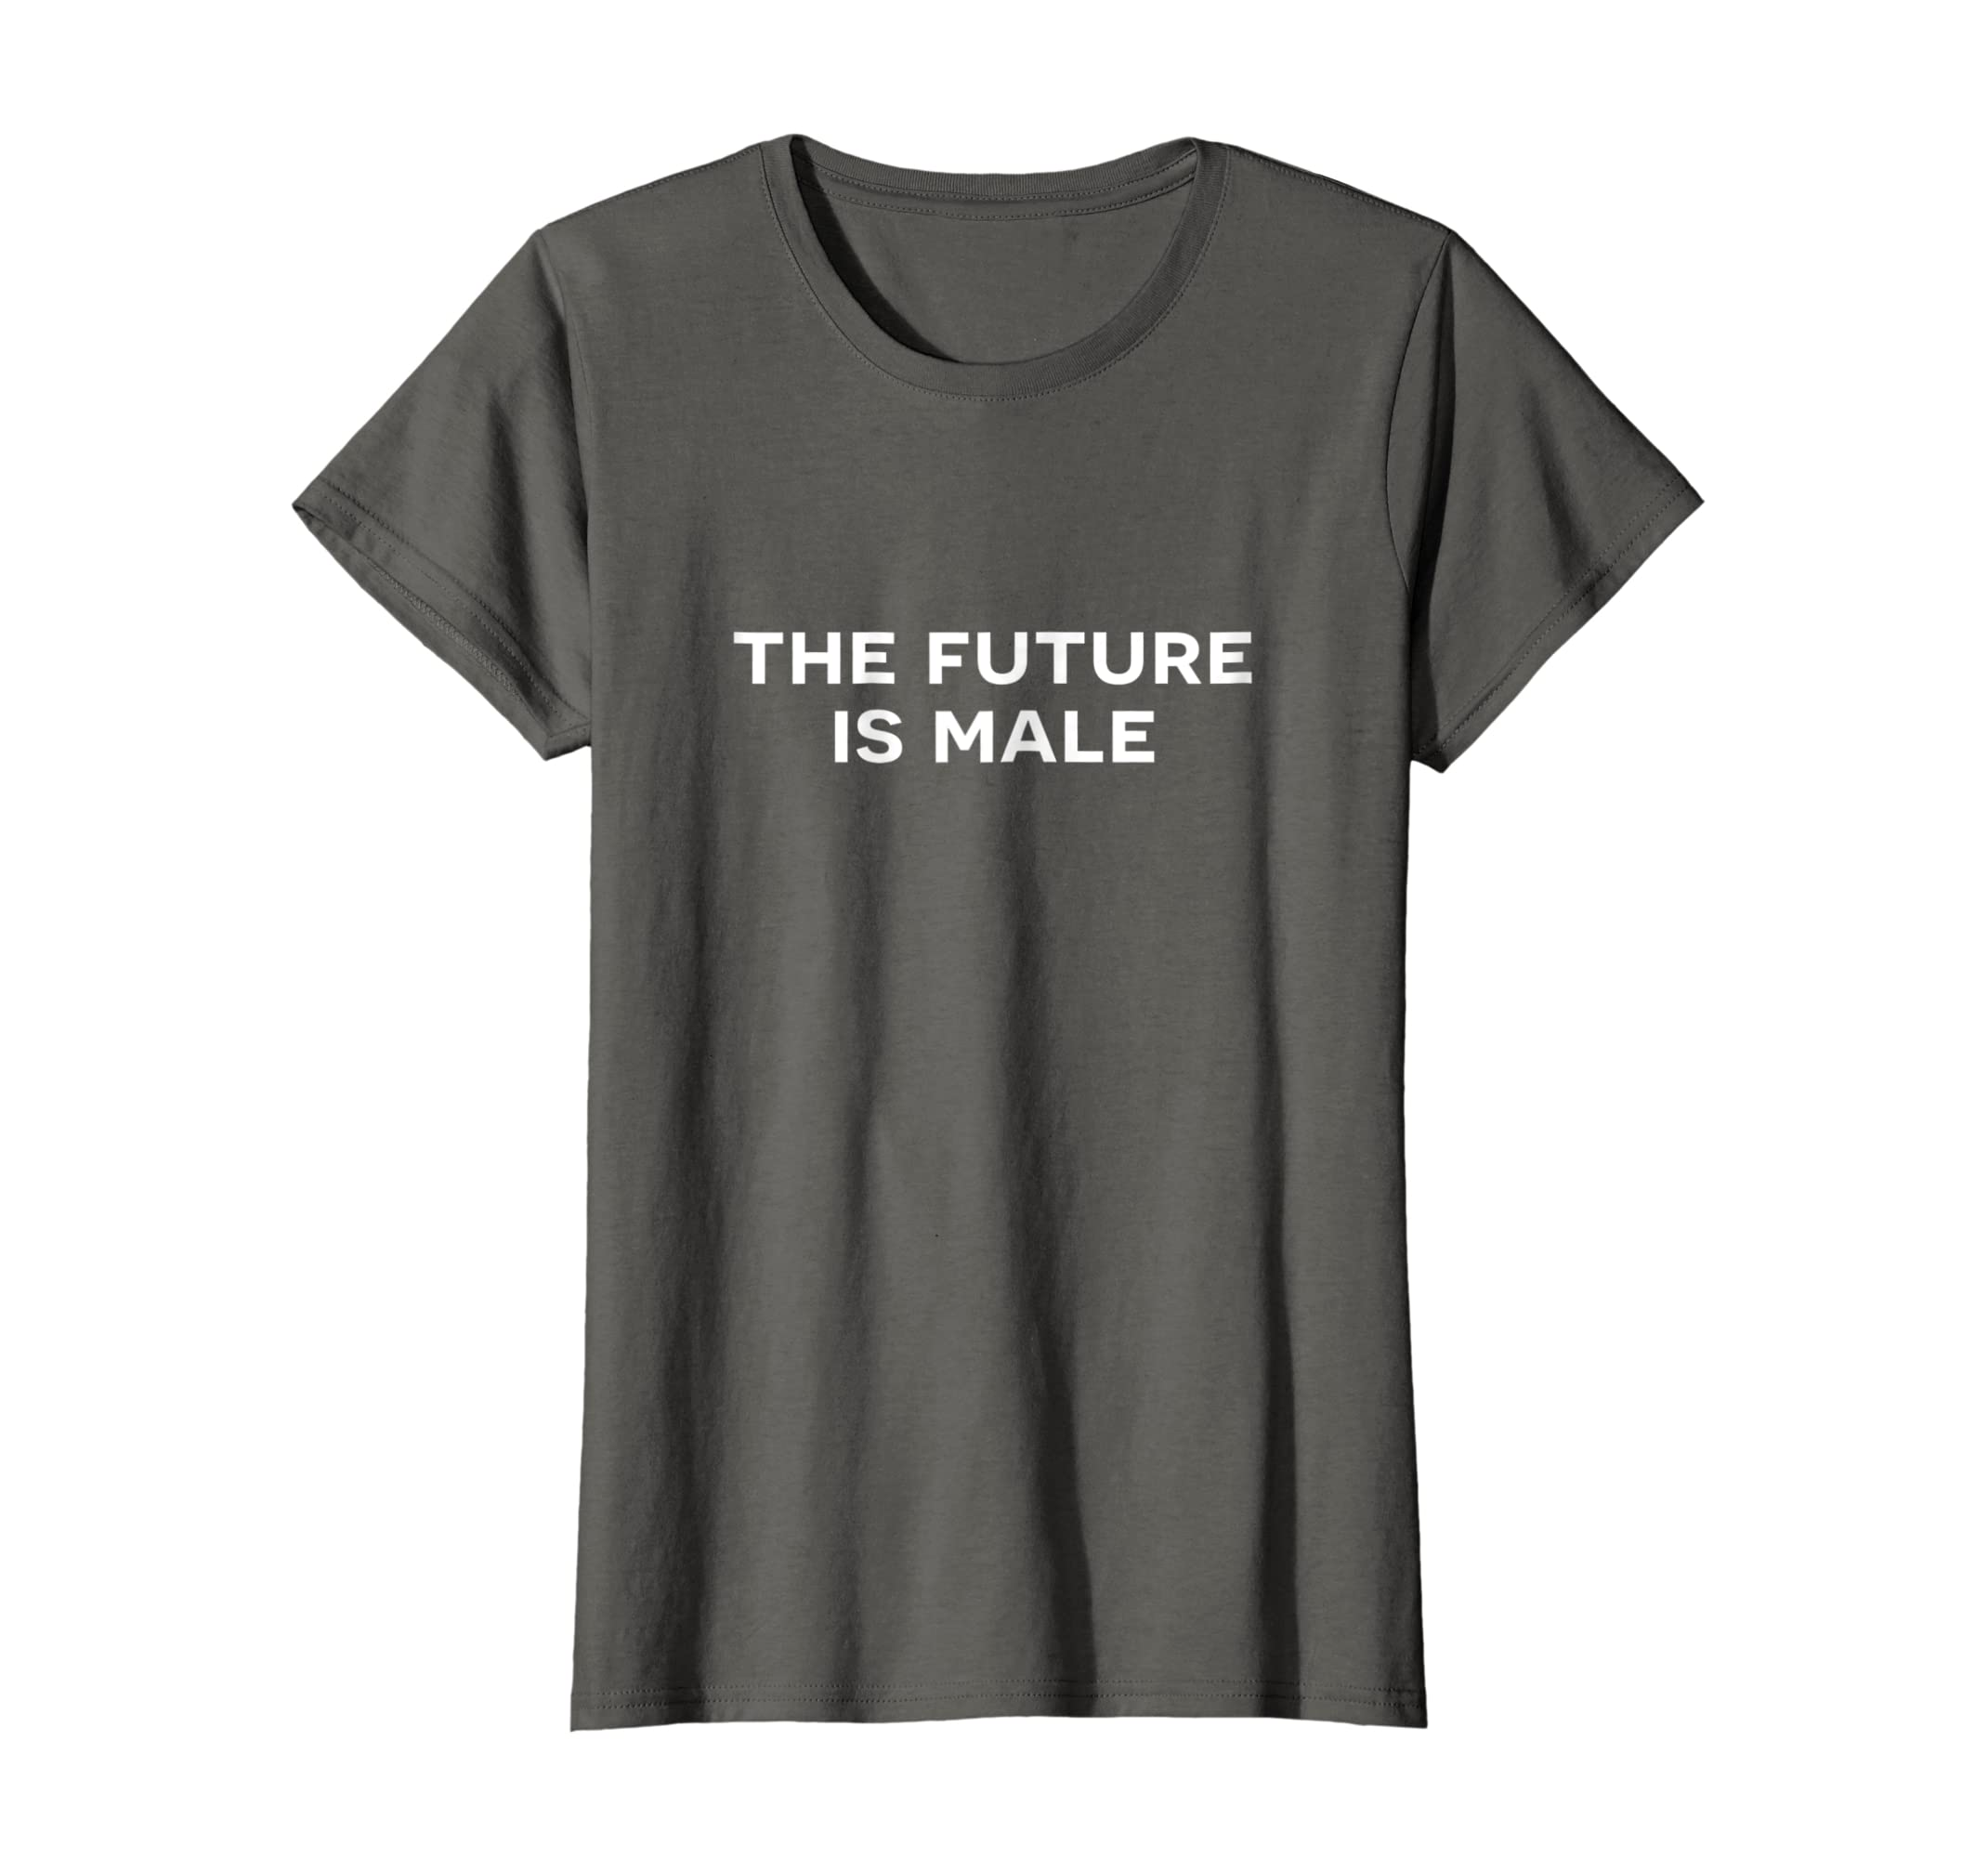 966ab783907f75 Amazon.com: The Future Is Male - Men Women Funny T Shirt Gift: Clothing